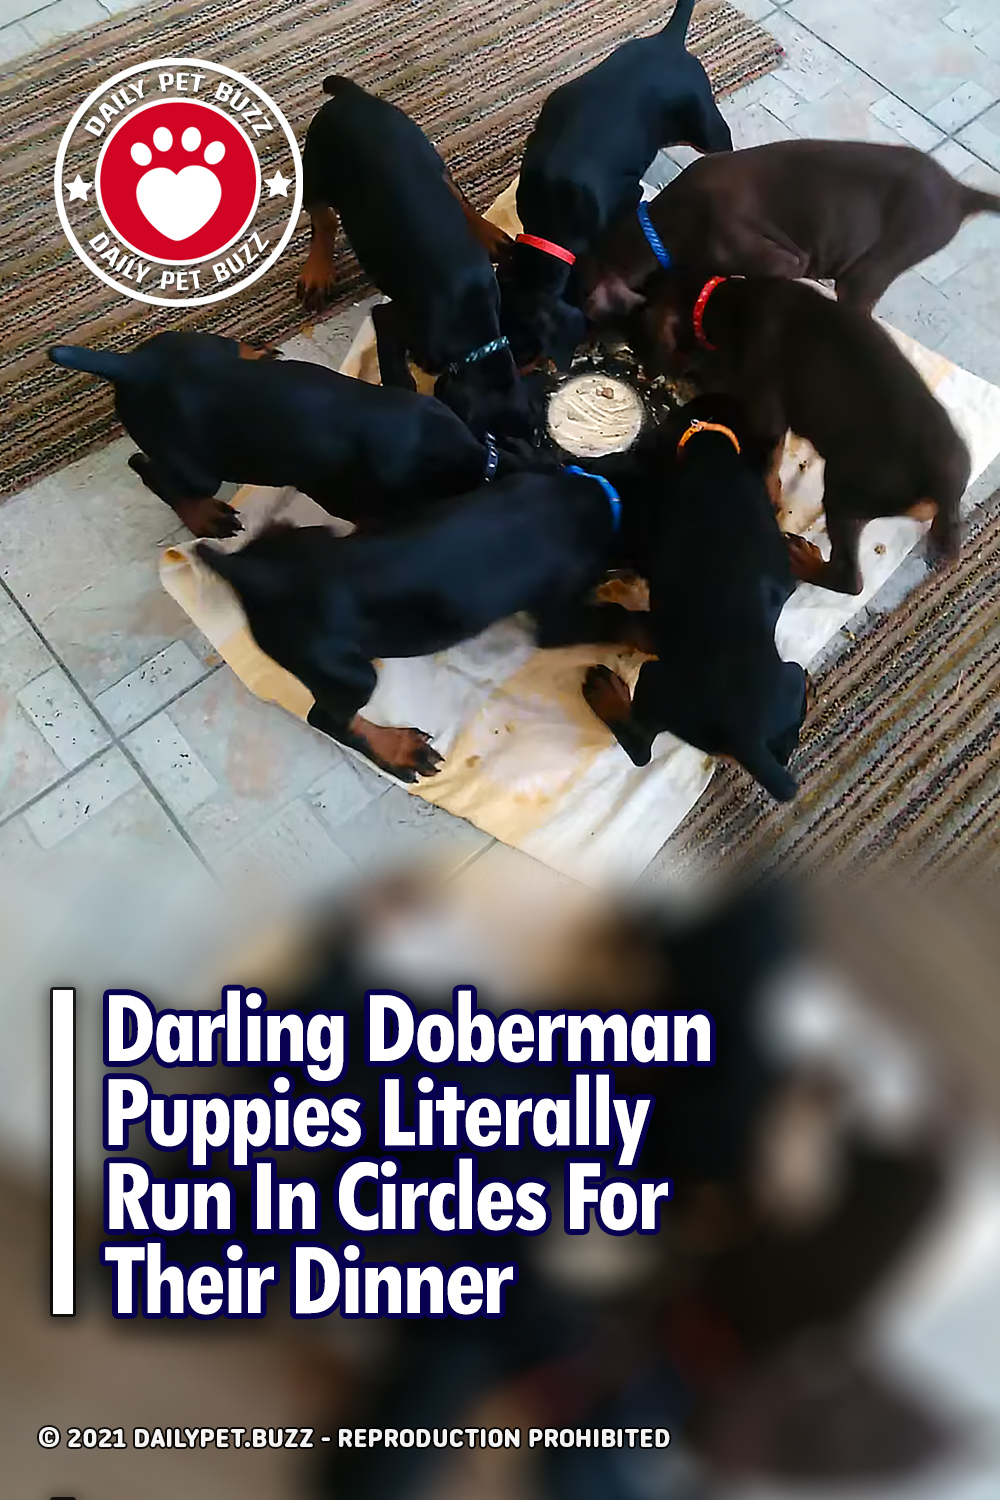 Darling Doberman Puppies Literally Run In Circles For Their Dinner